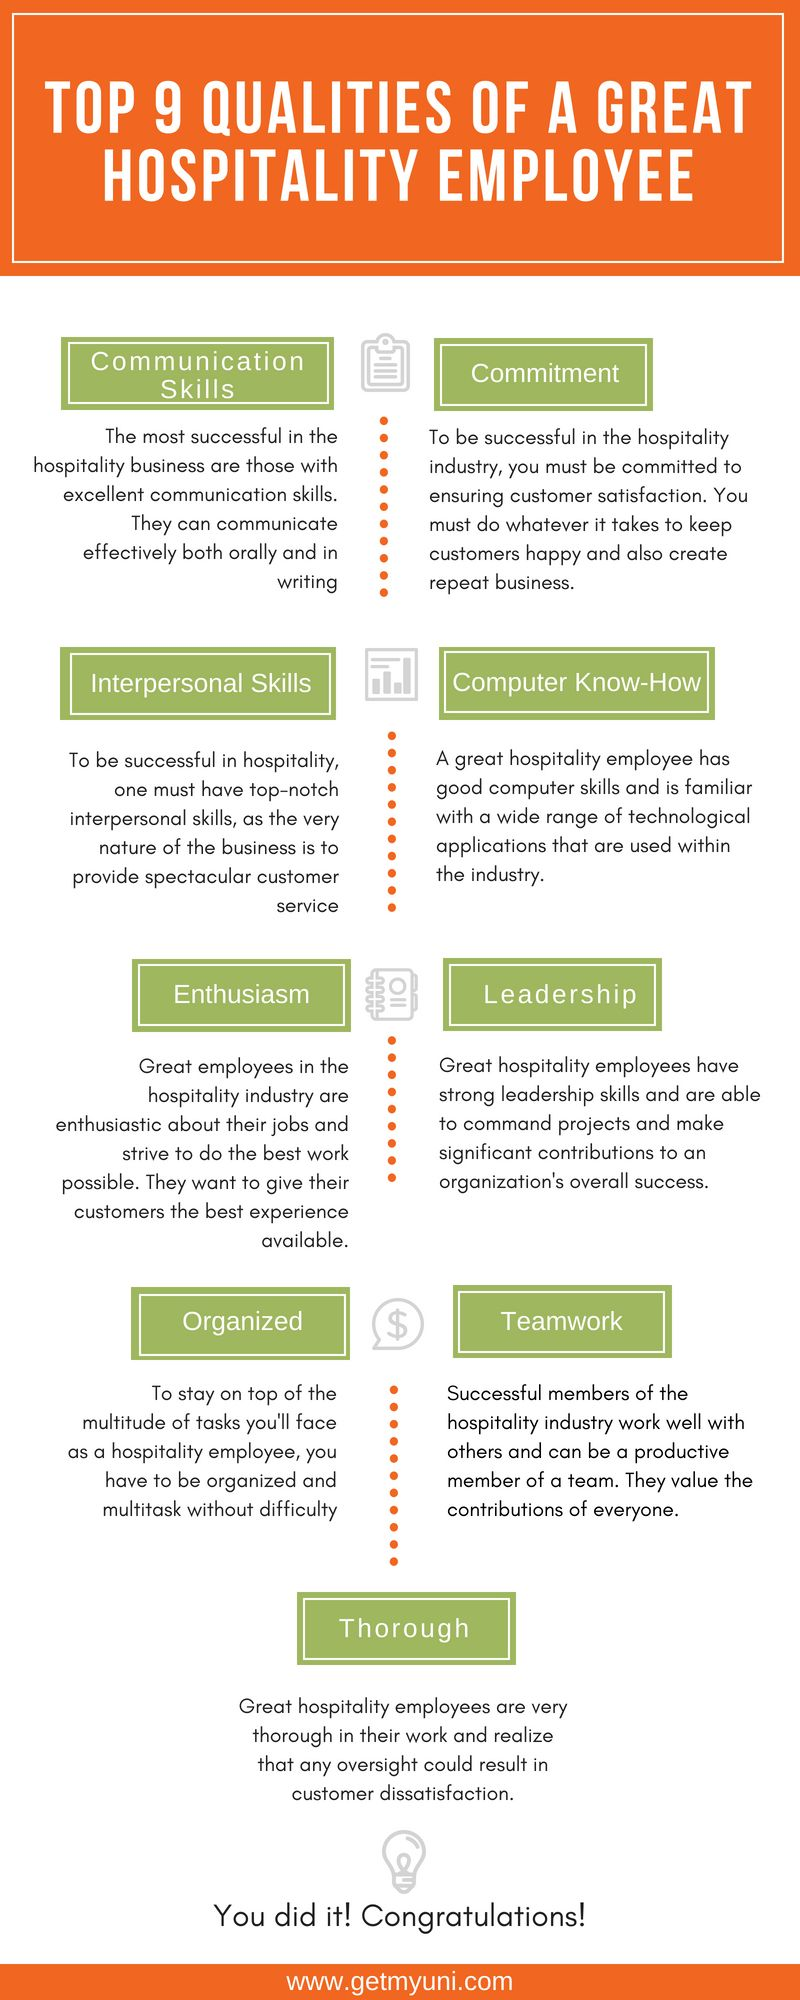 Hotel Management is a part of the hospitality sector in